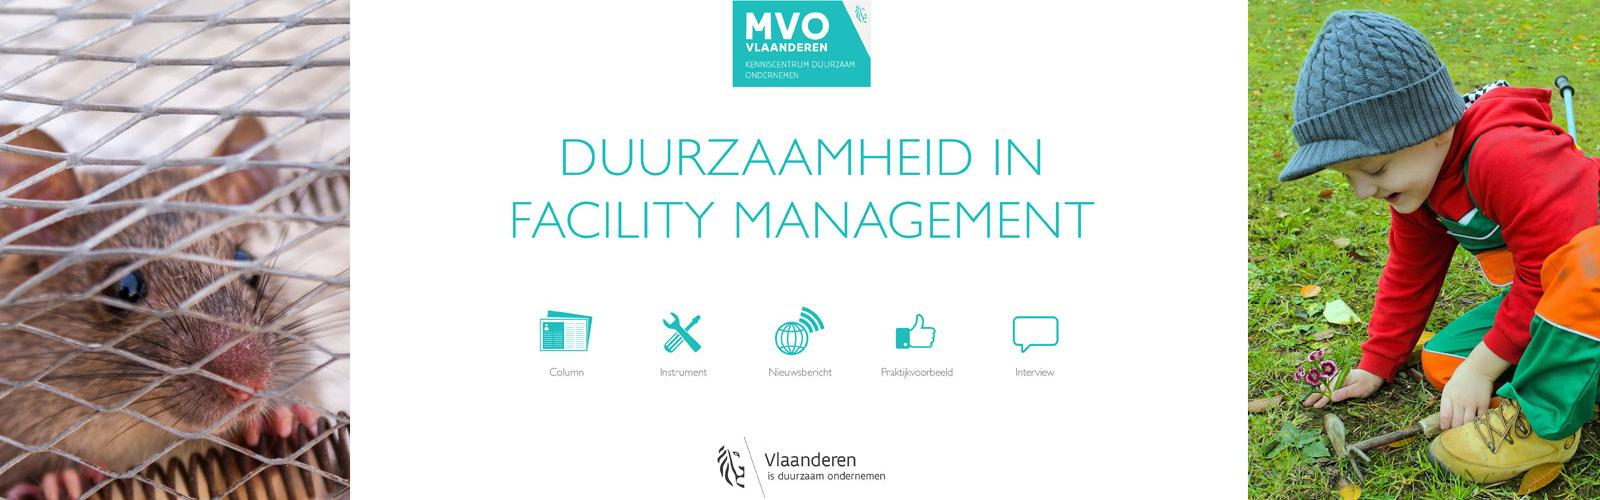 Coverbeeld dossier duurzaam facility management